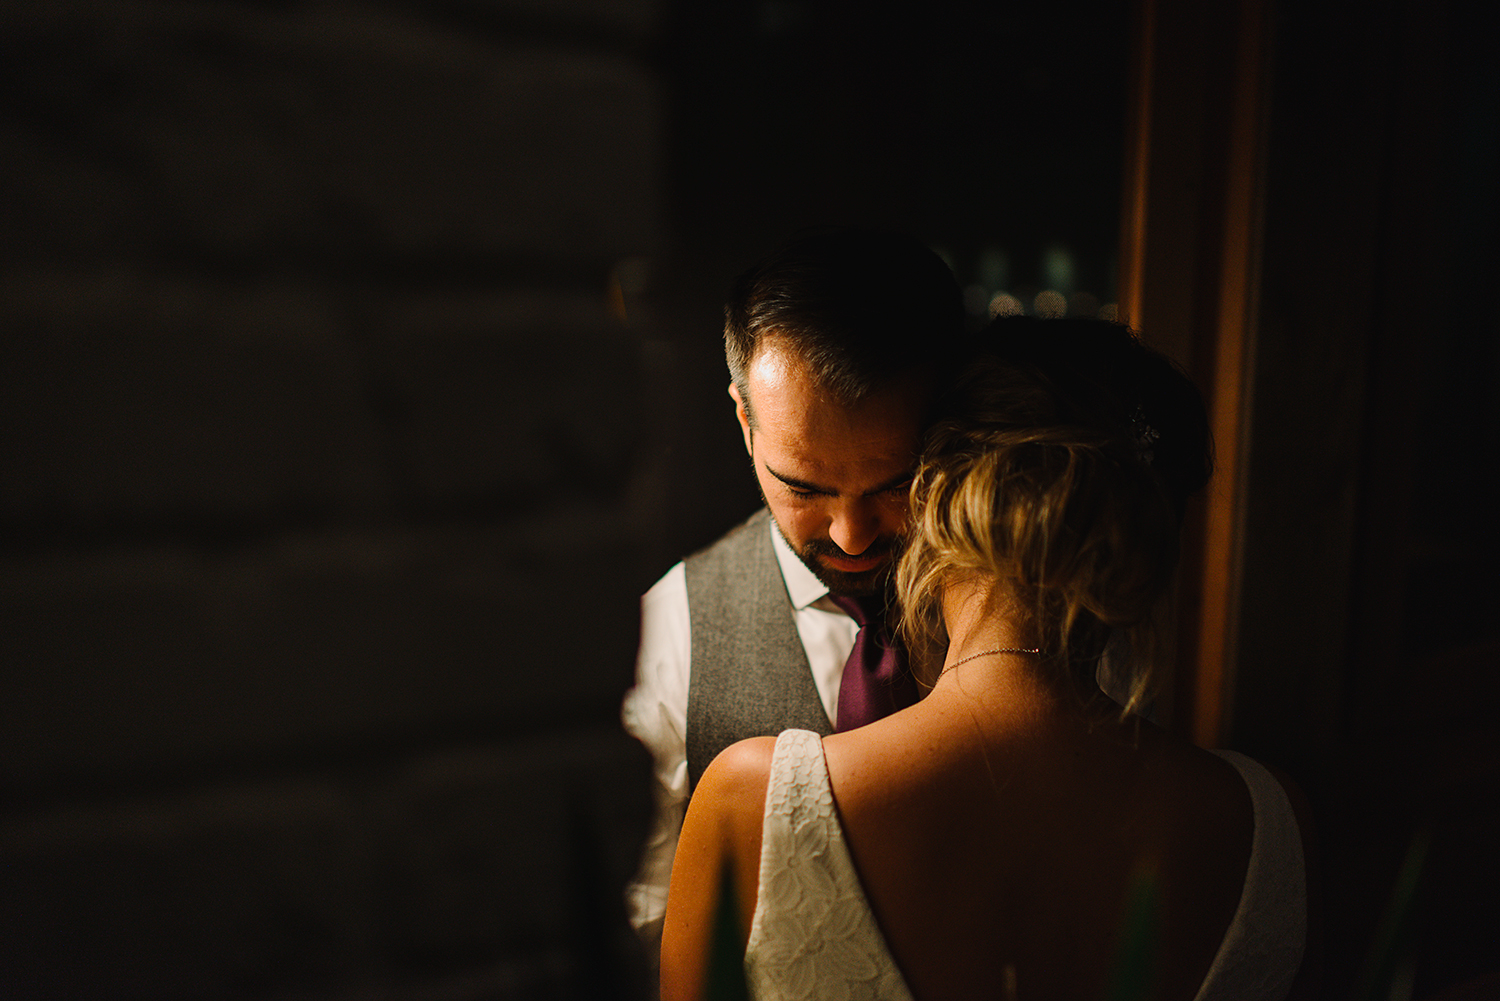 Prince-Edward-County-Wedding-Photographer-Drake-Hotel-Vintage-Wedding-Venue-Bride-and-Groom-intimate-moment-portrait-moody-light.jpg